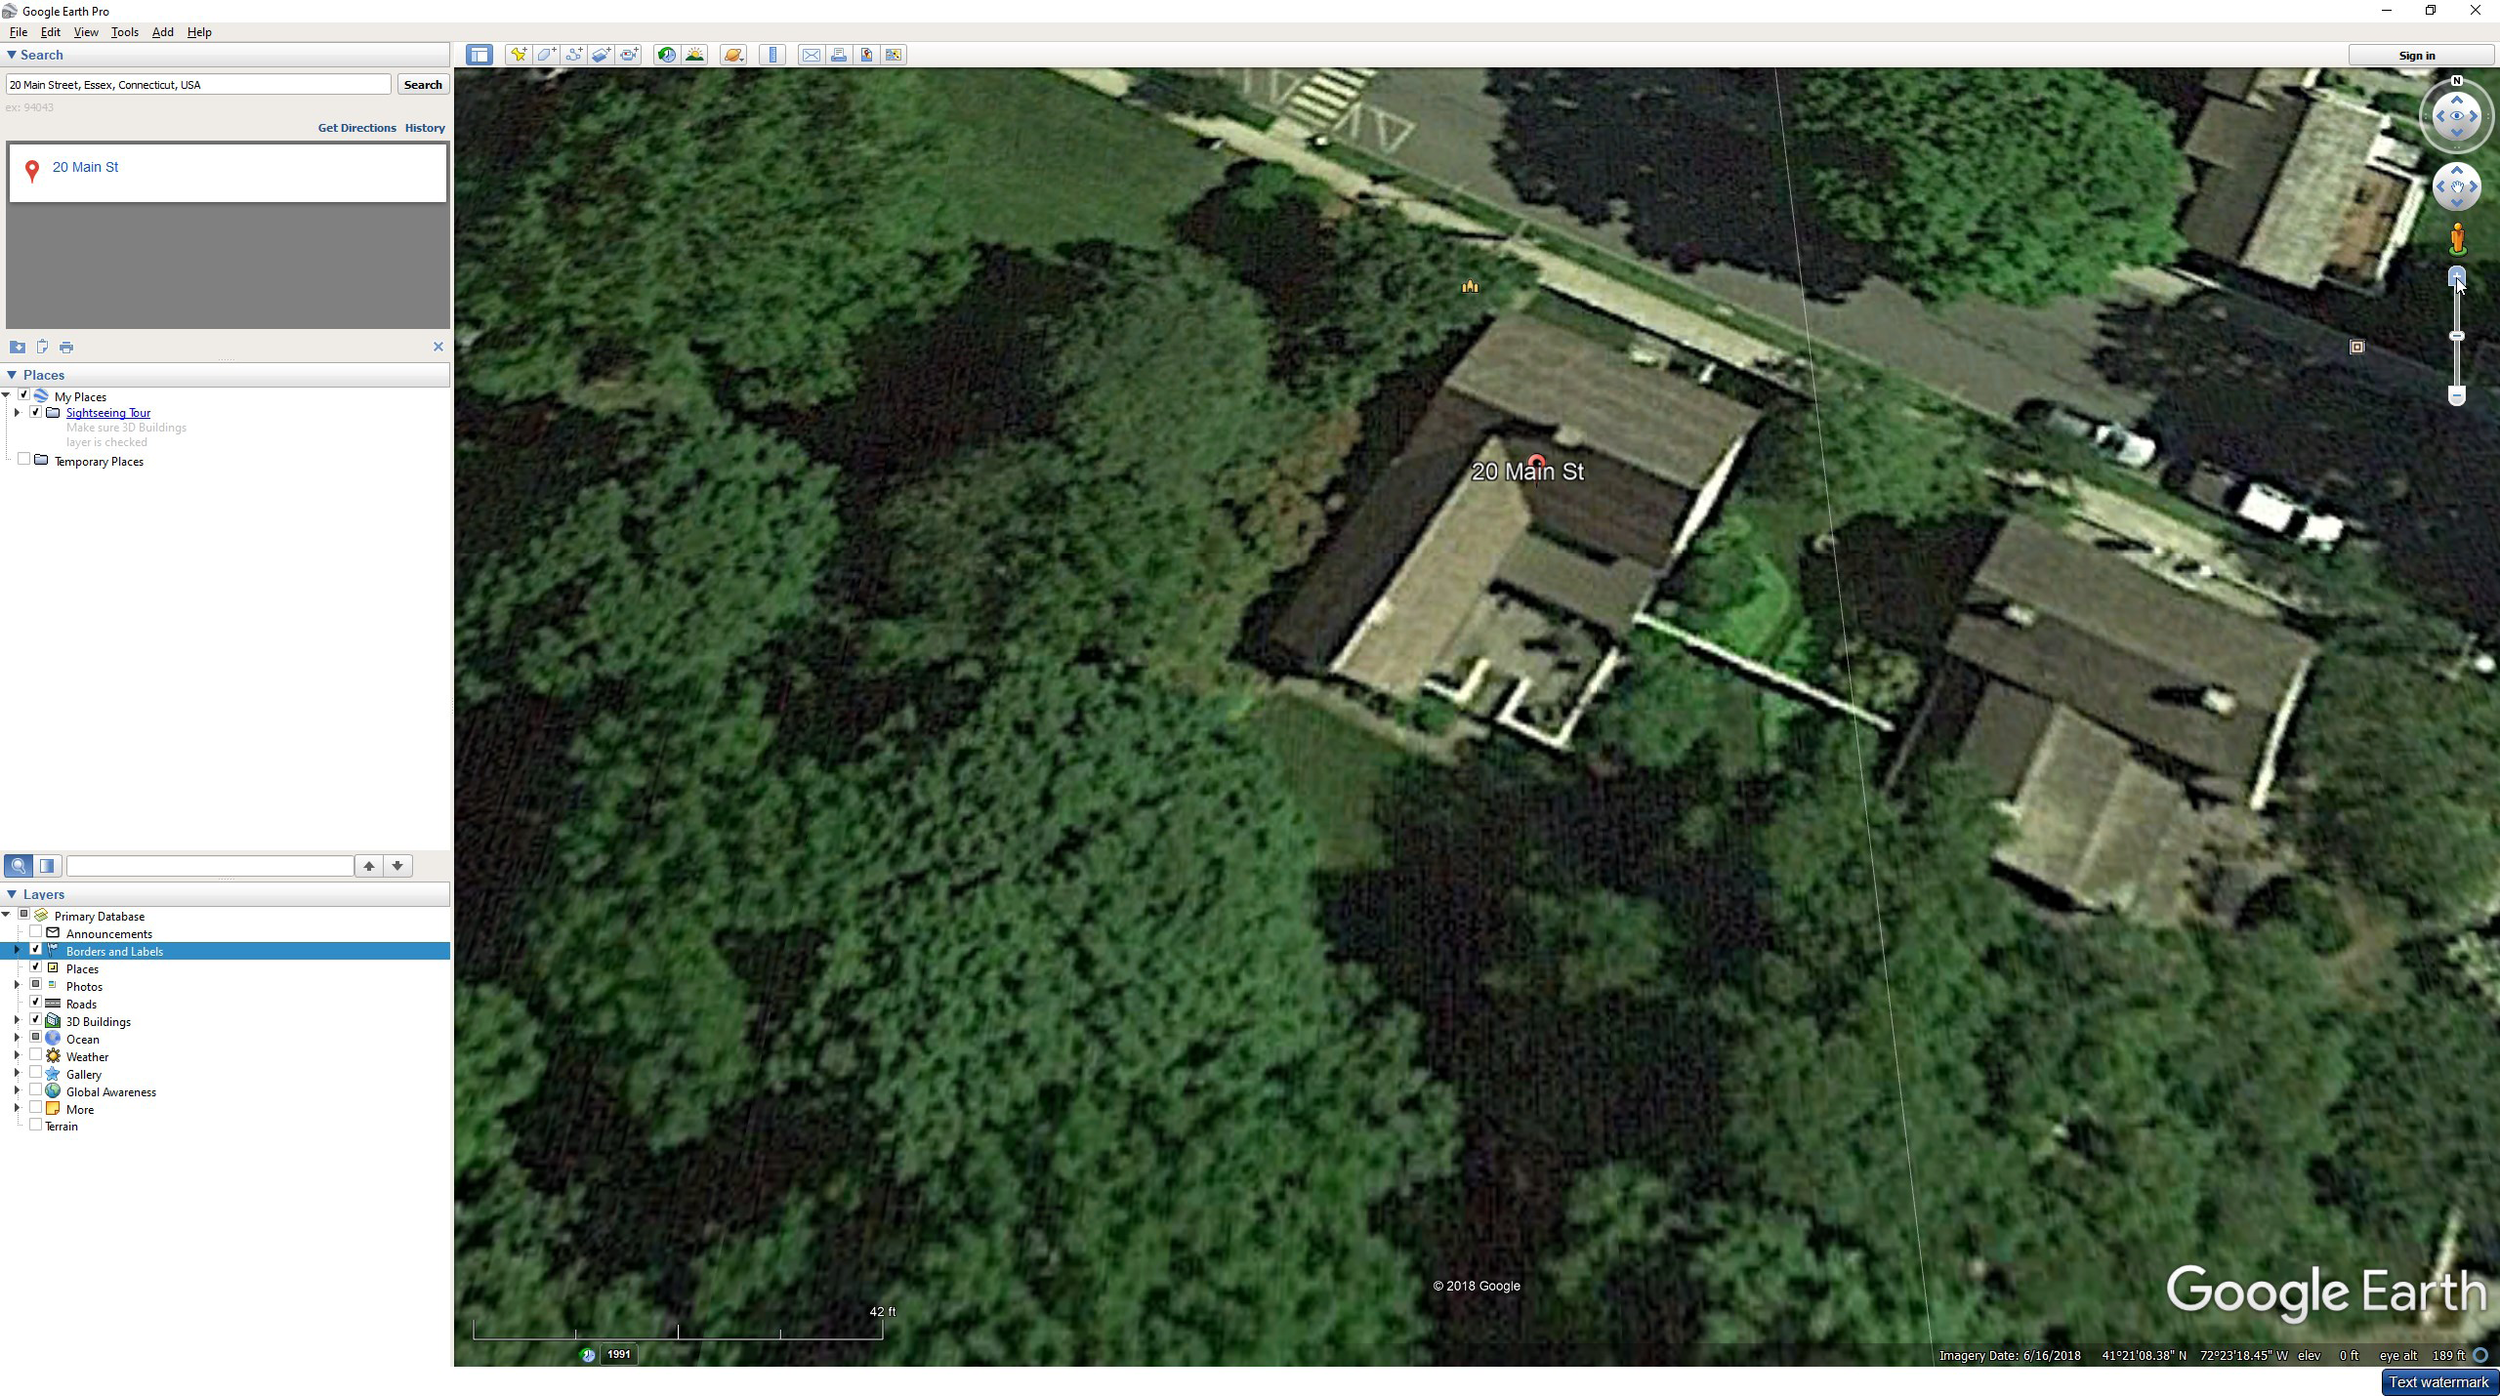 RoofOnline.com - How to Find Your House in Google Earth 8.png